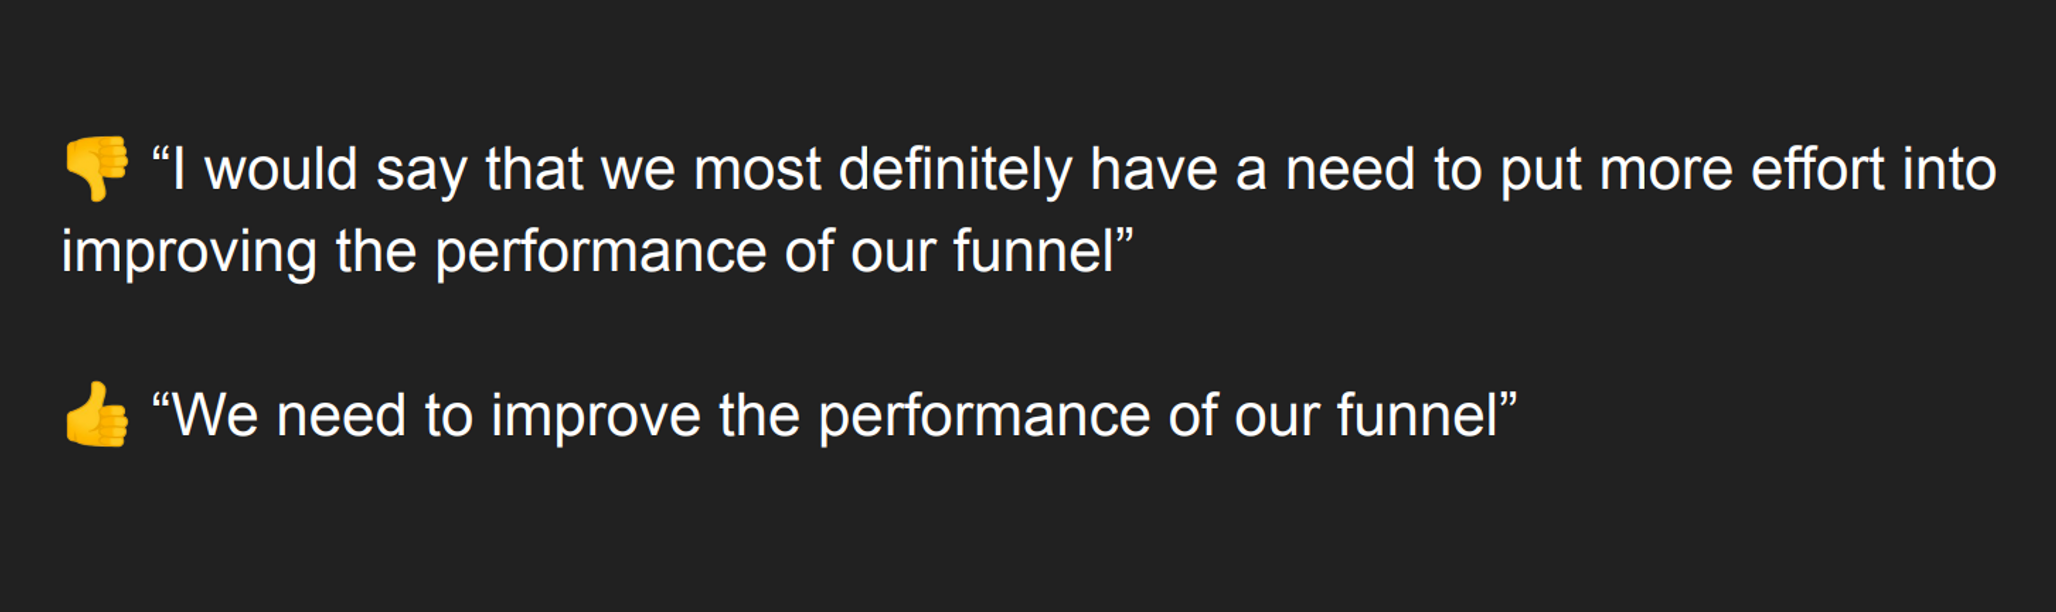 "👎 ""I would say that we most definitely have a need to put more effort into improving the performance of our funnel"" 👍 ""We need to improve the performance of our funnel"""